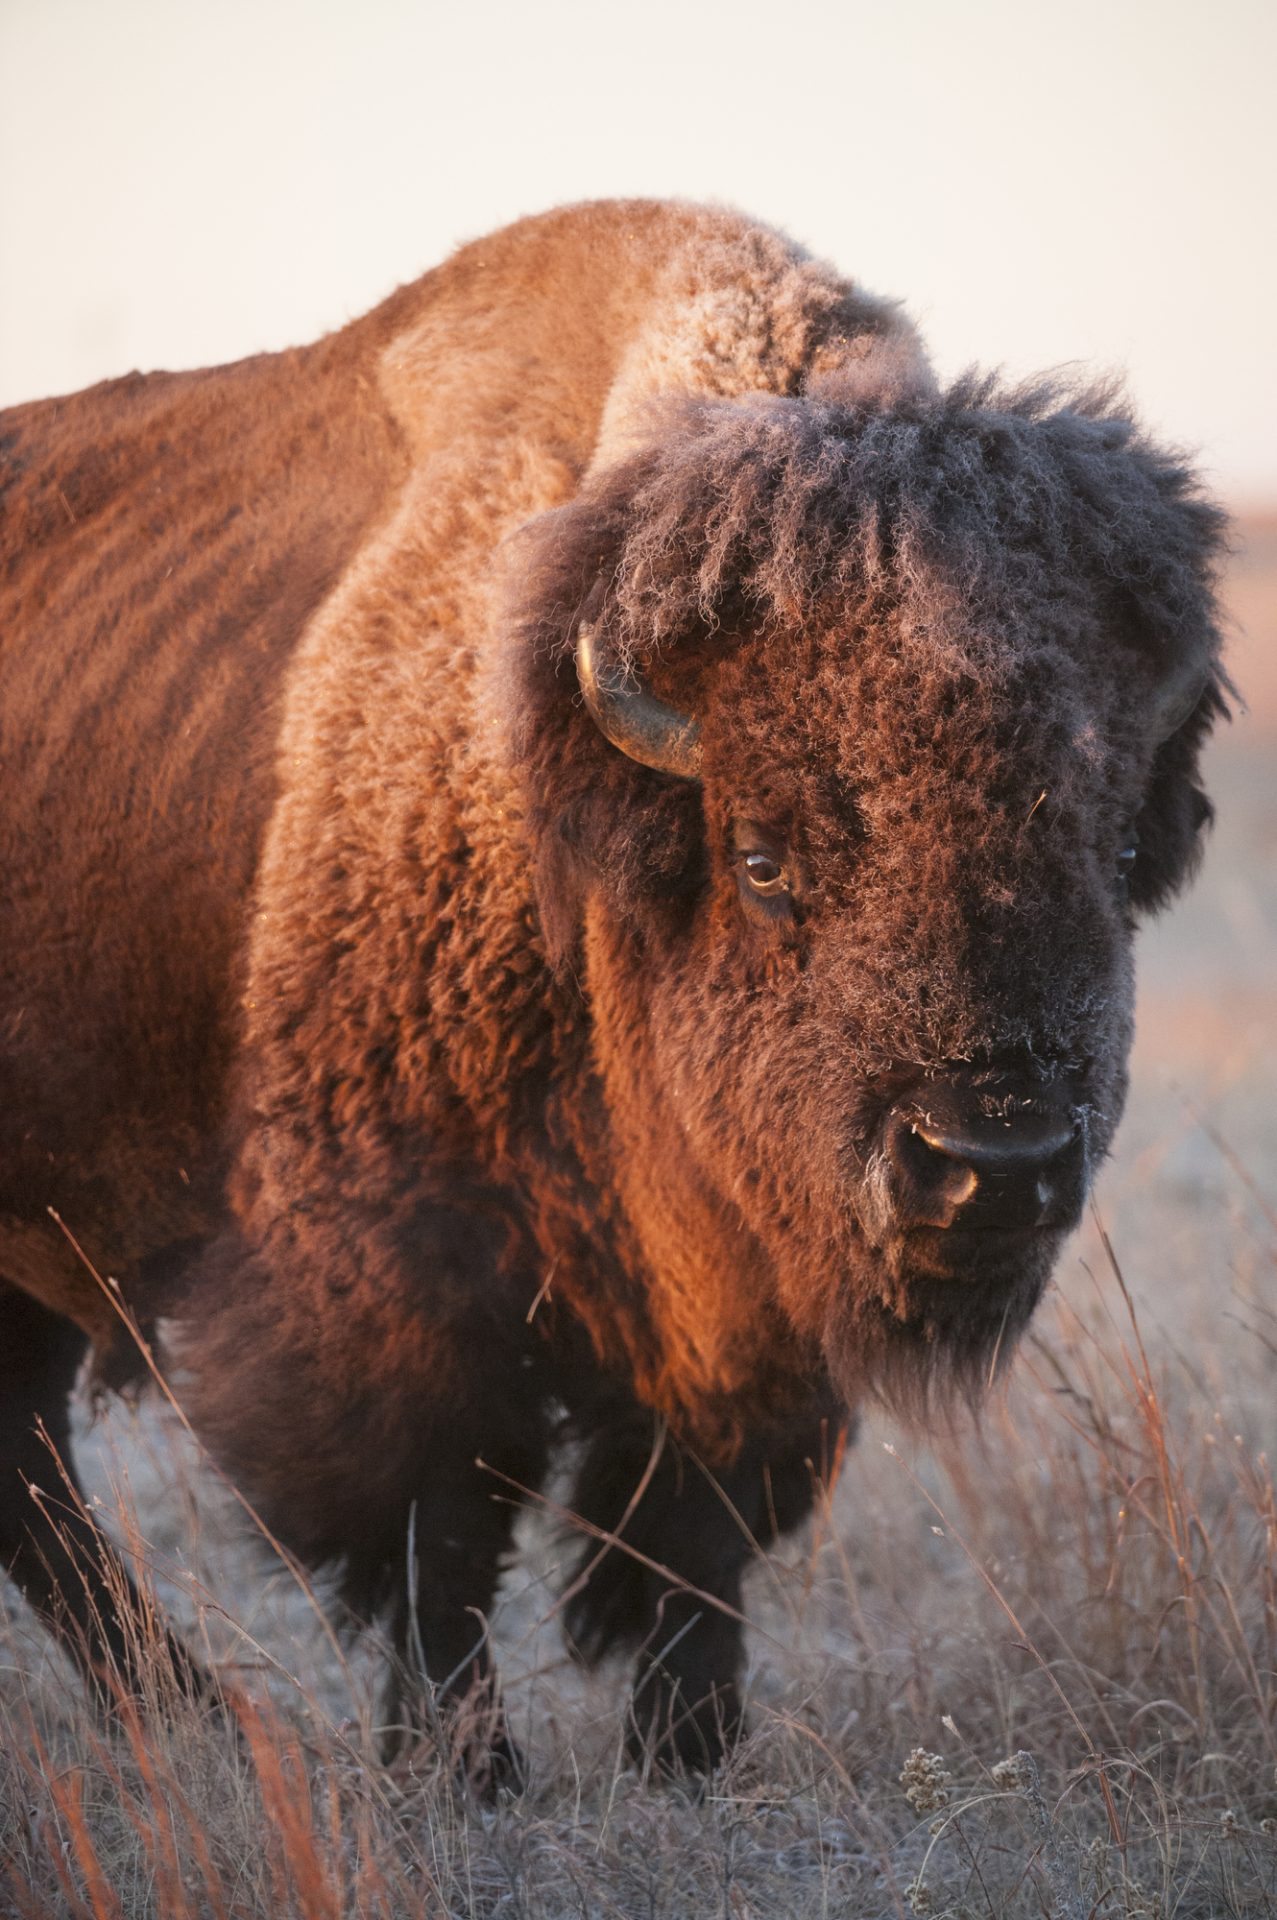 Photo: A portrait of a bison on a ranch near Valentine, Nebraska.